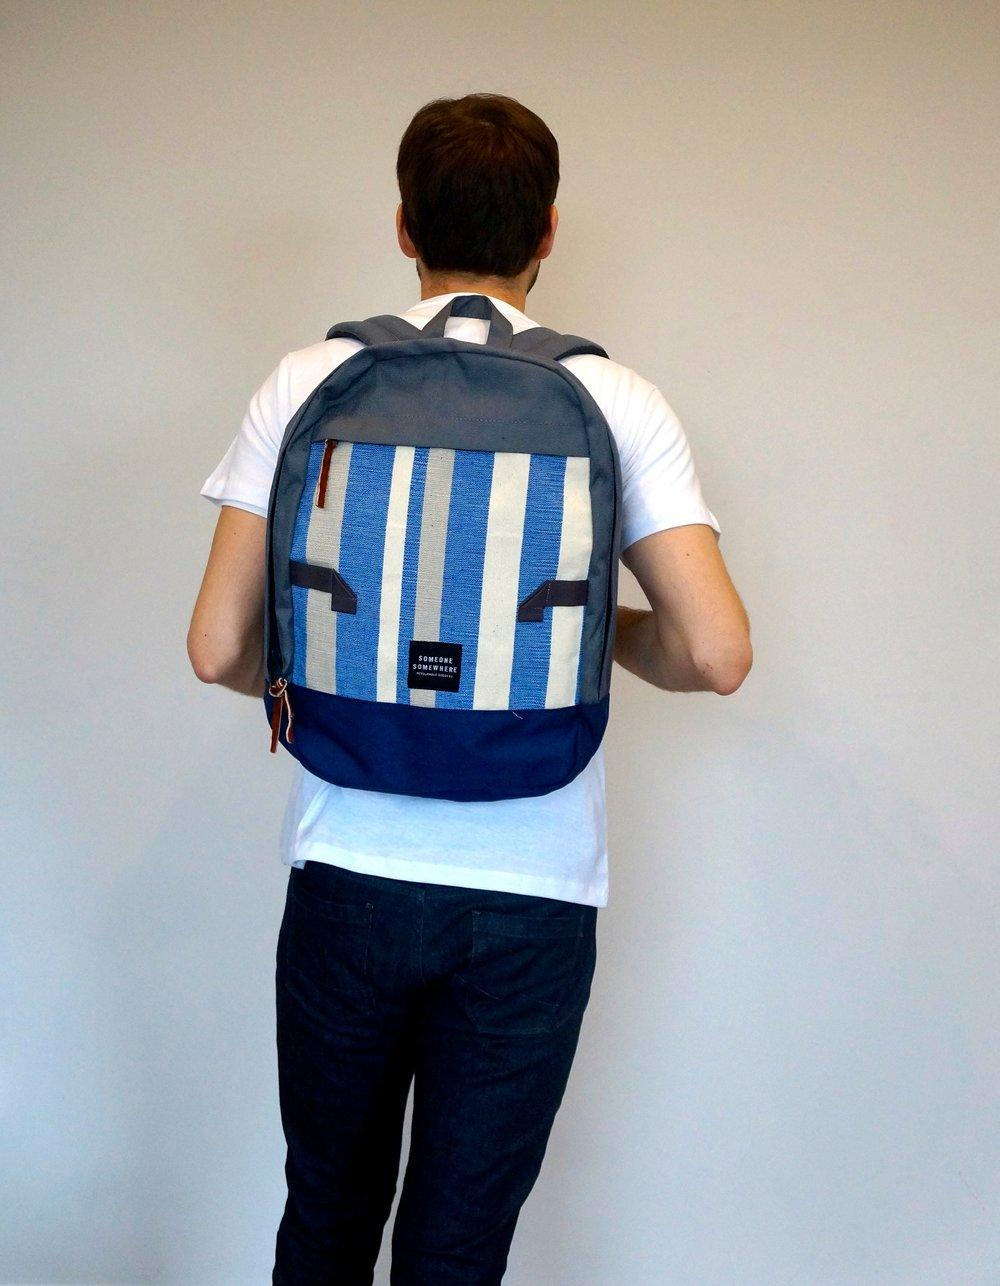 model wearing blue and white someone somewhere backpack